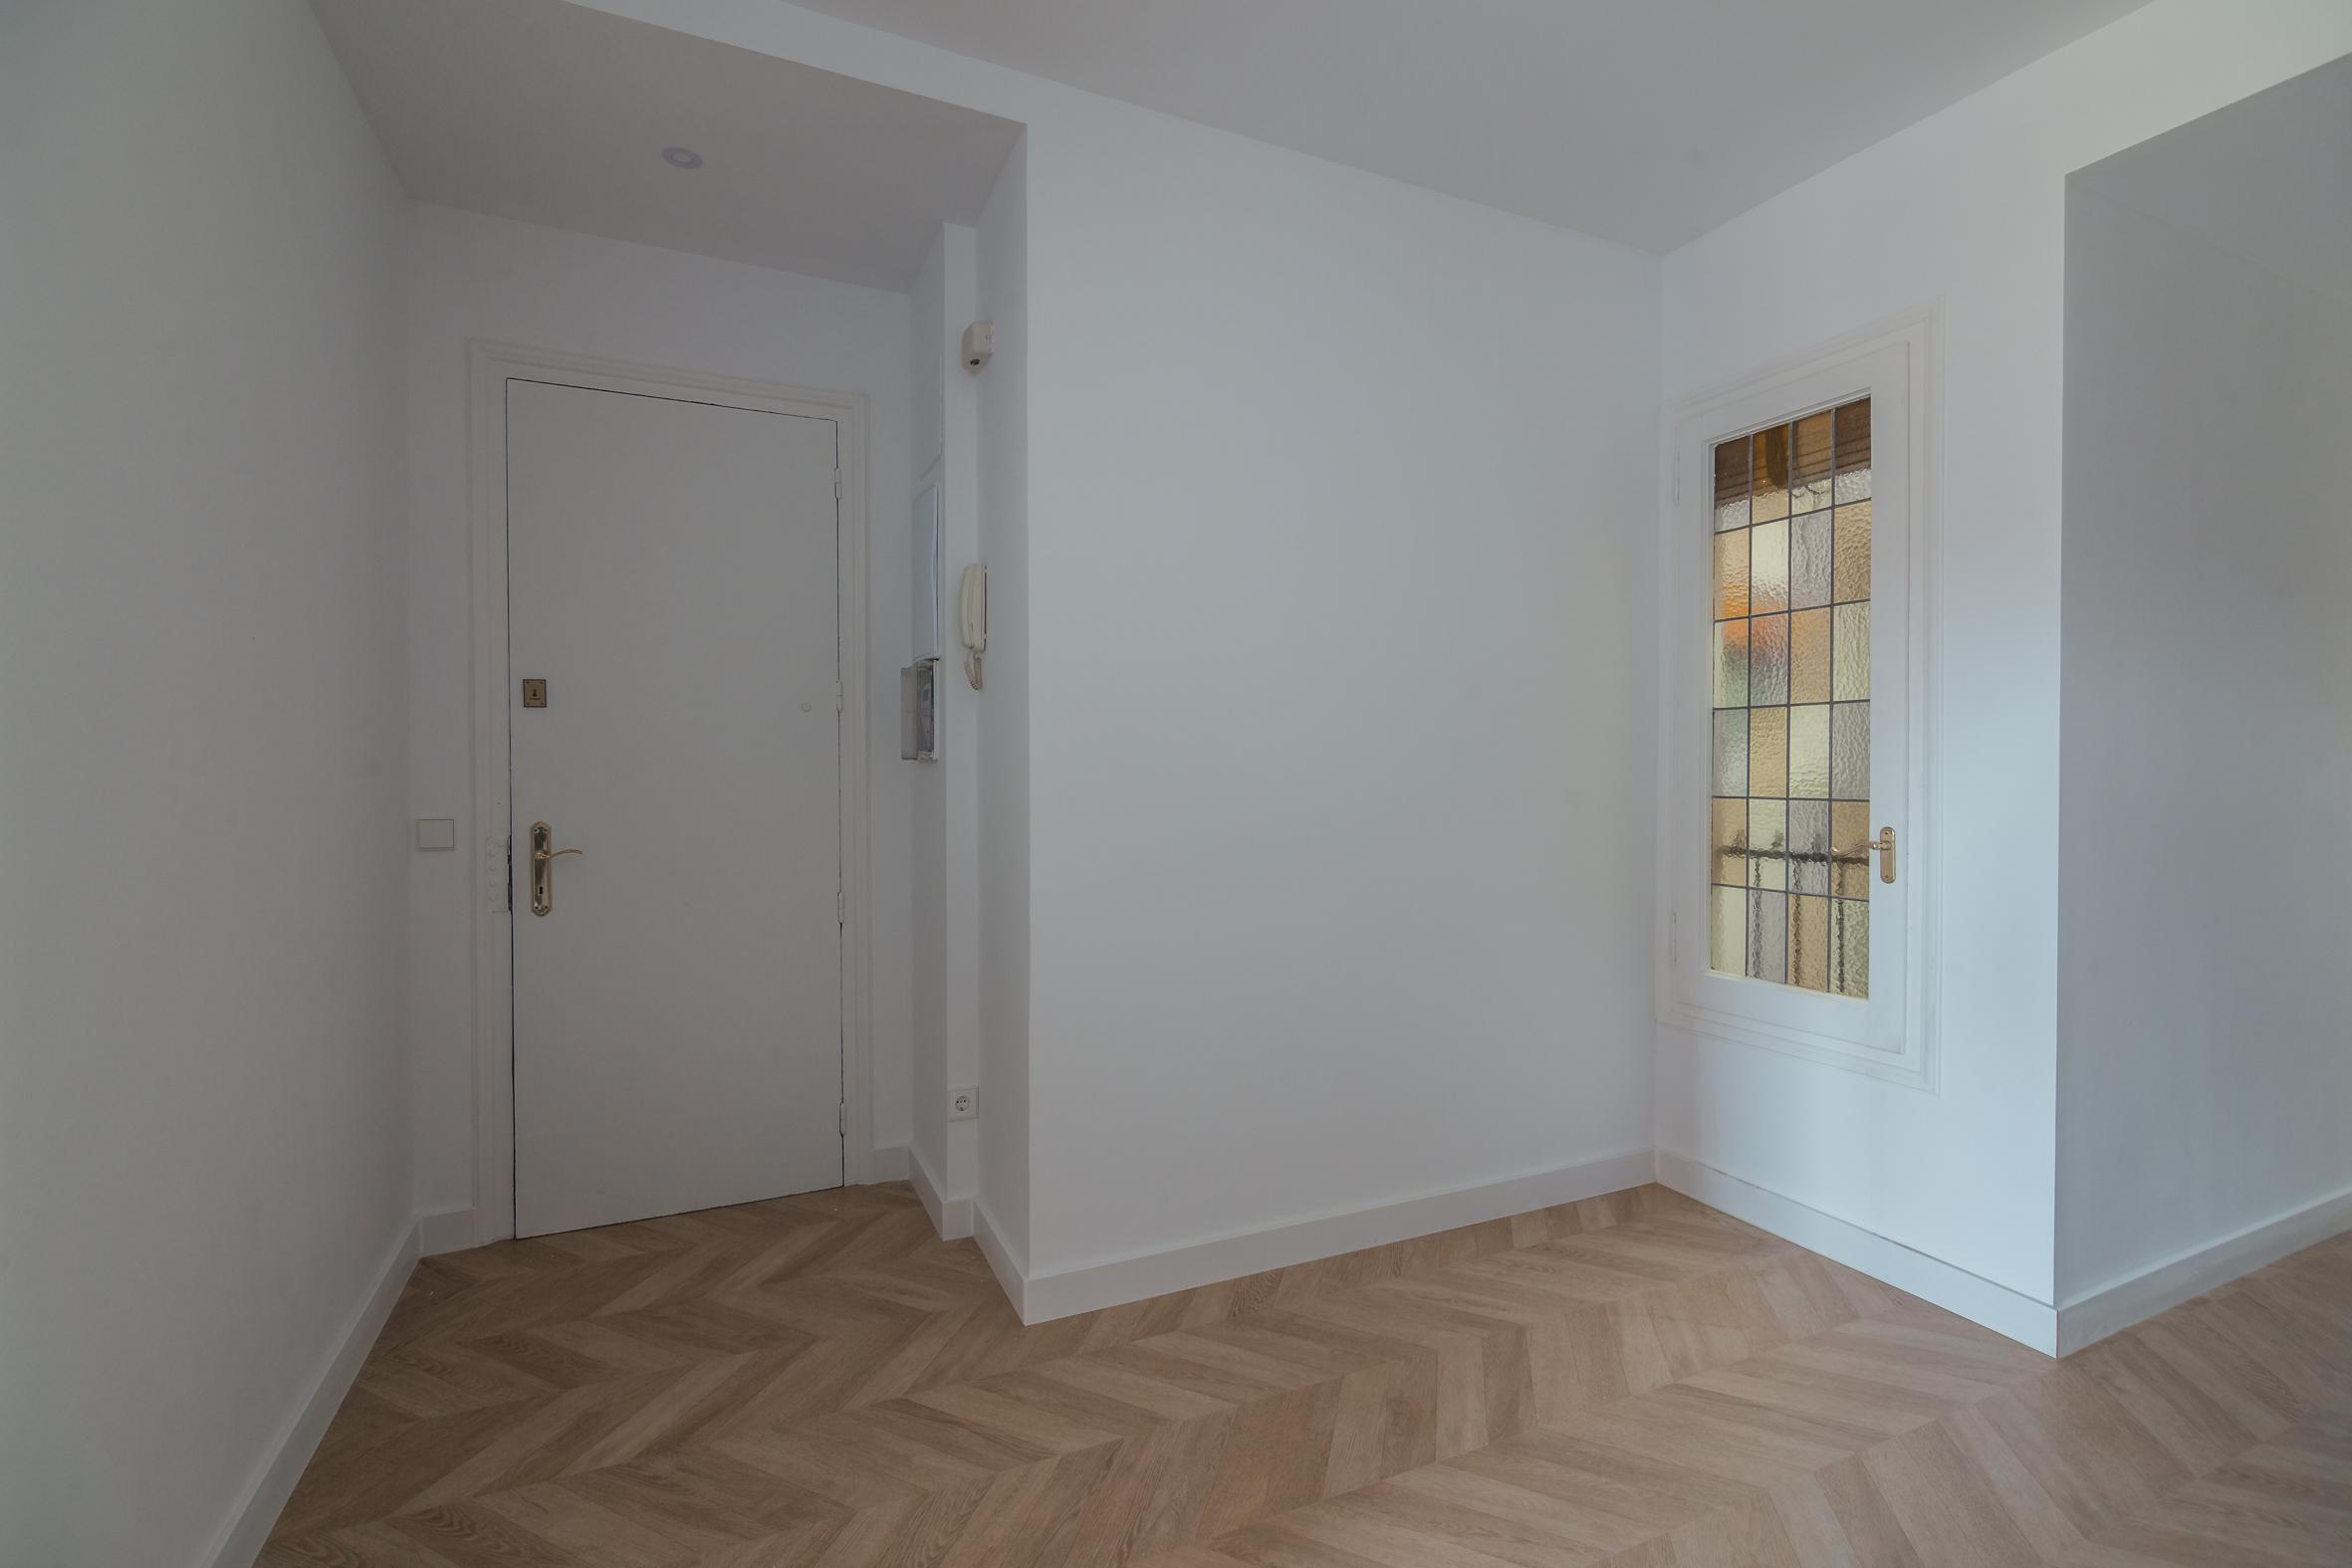 244010 Flat for sale in Ciutat Vella, Barri Gótic 8